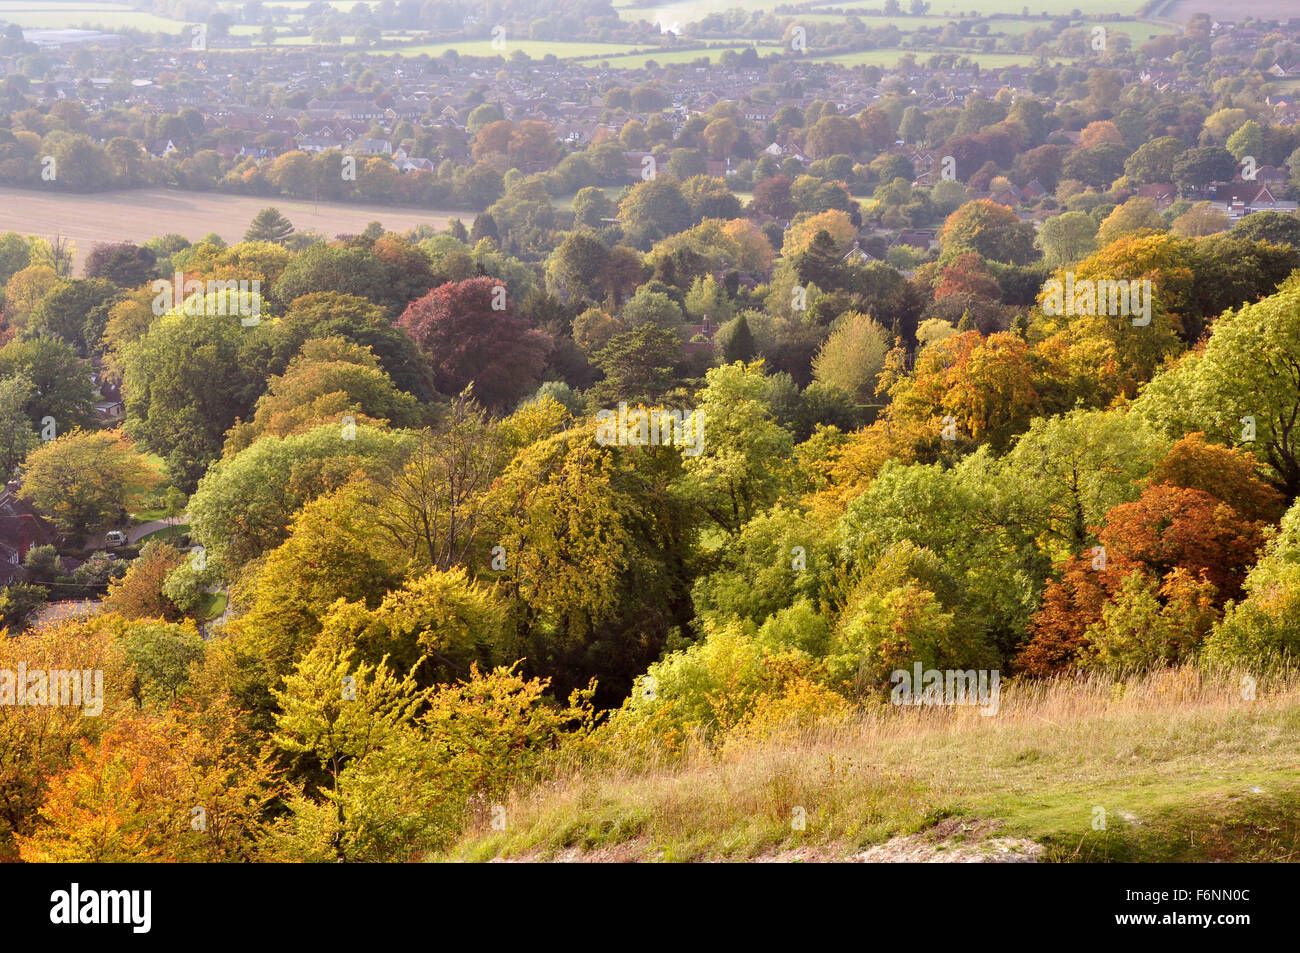 Chiltern Hills - on Whiteleaf hill - view over the many shades of autumn in the trees below - sunlight - distant - Stock Image